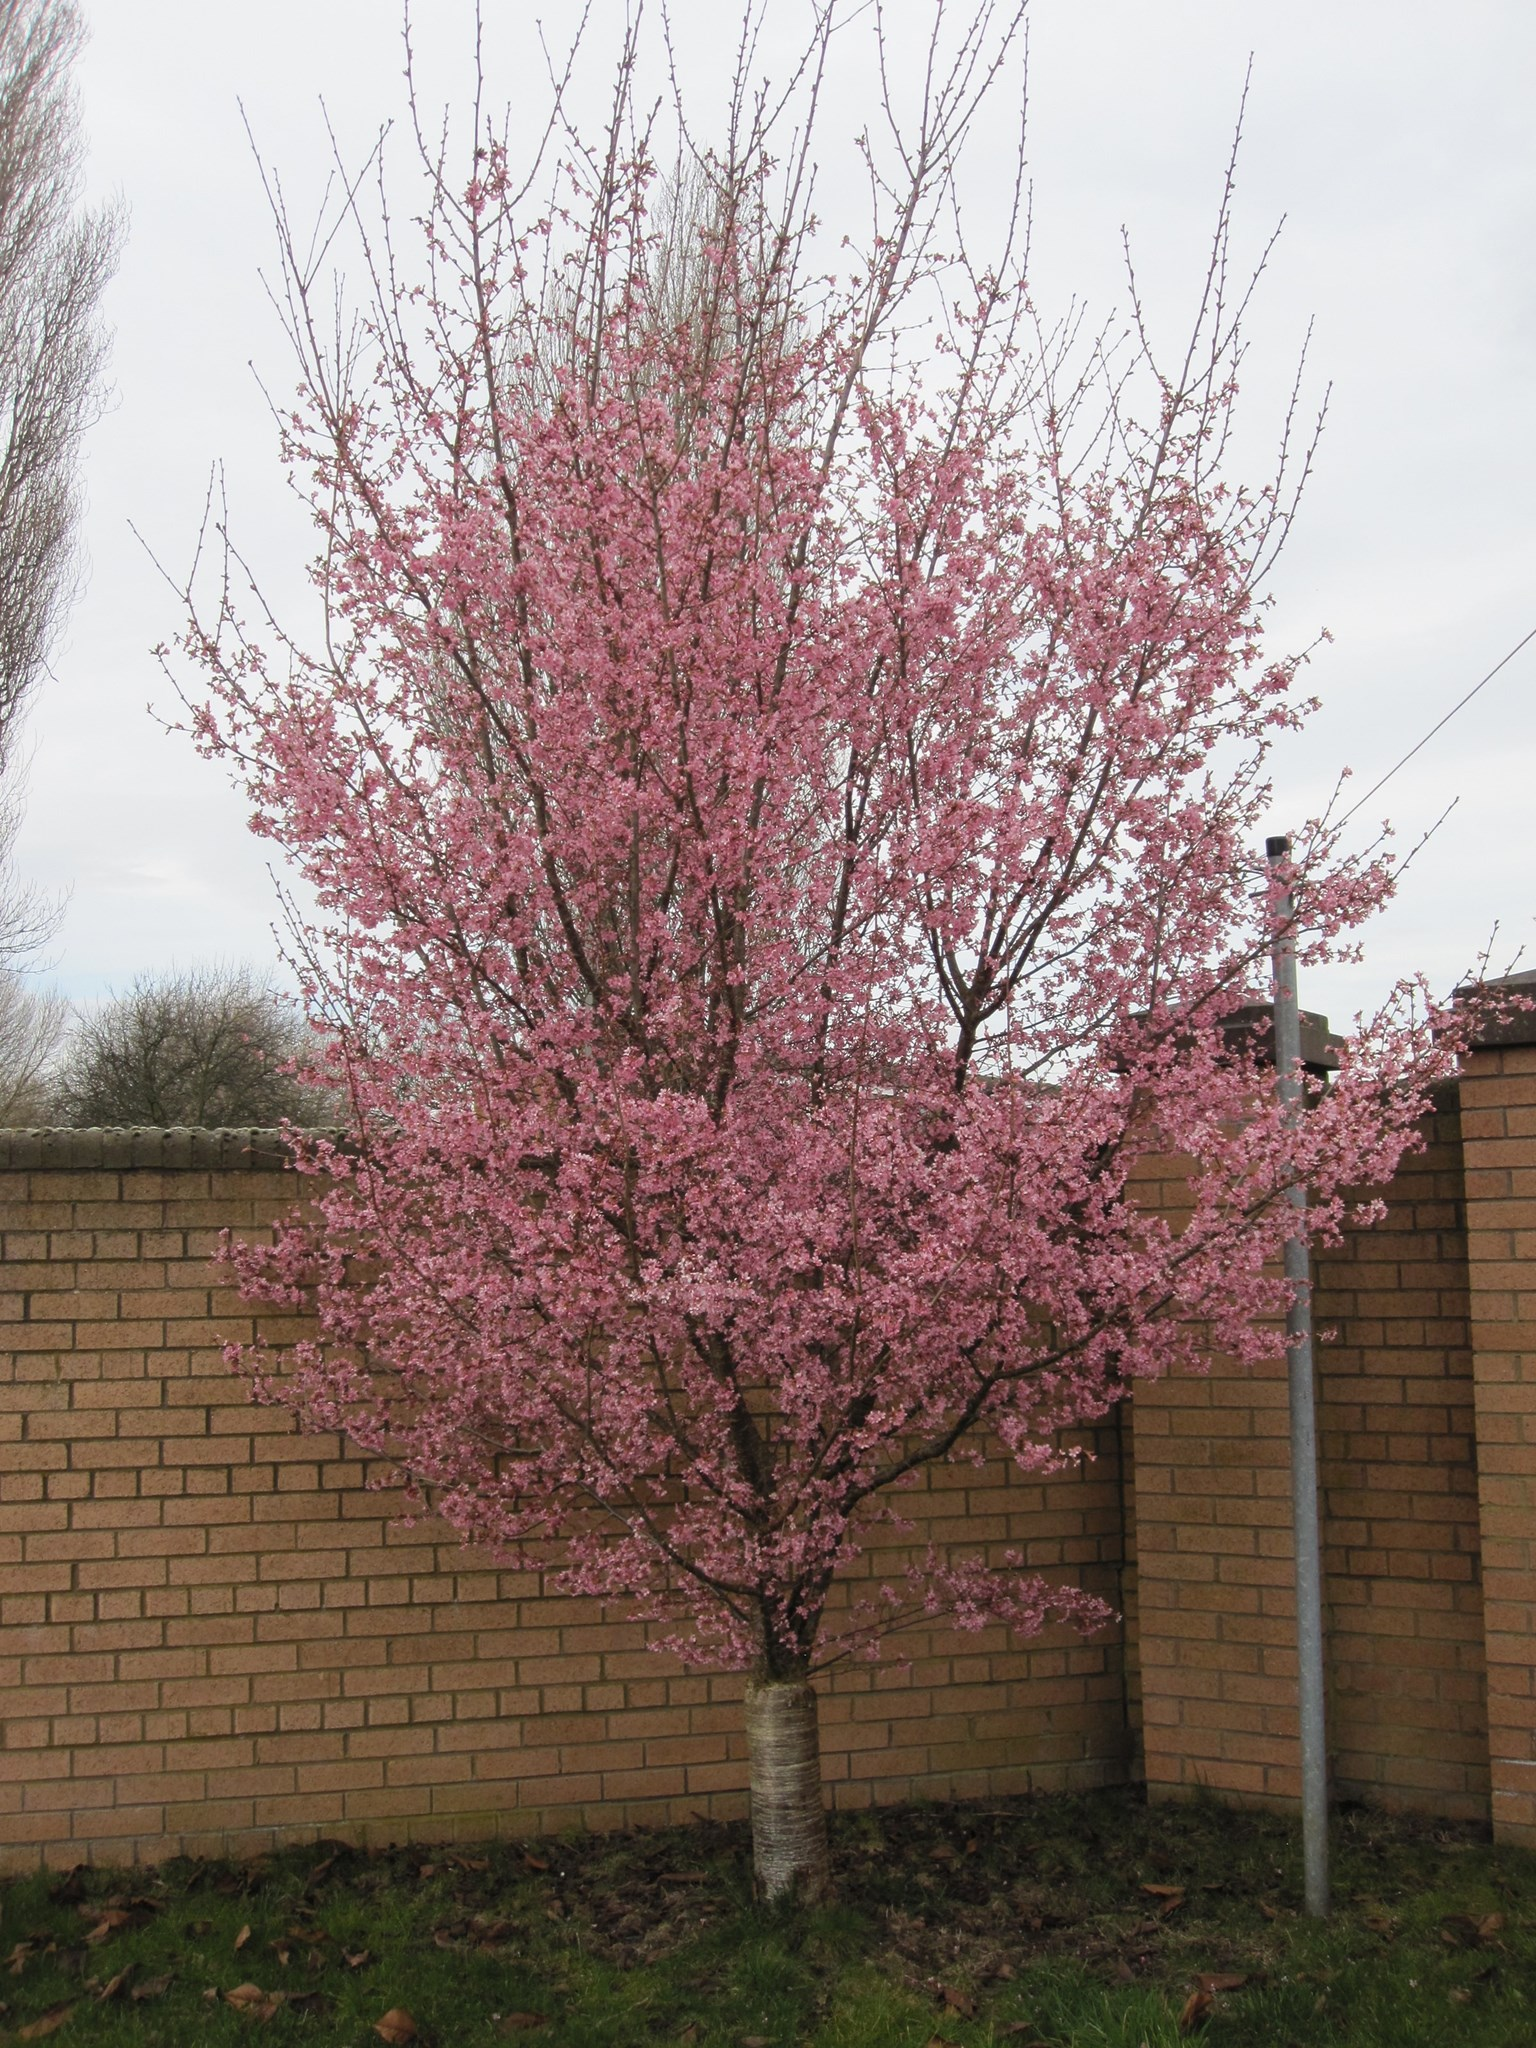 The blossom tree is growing bigger every year